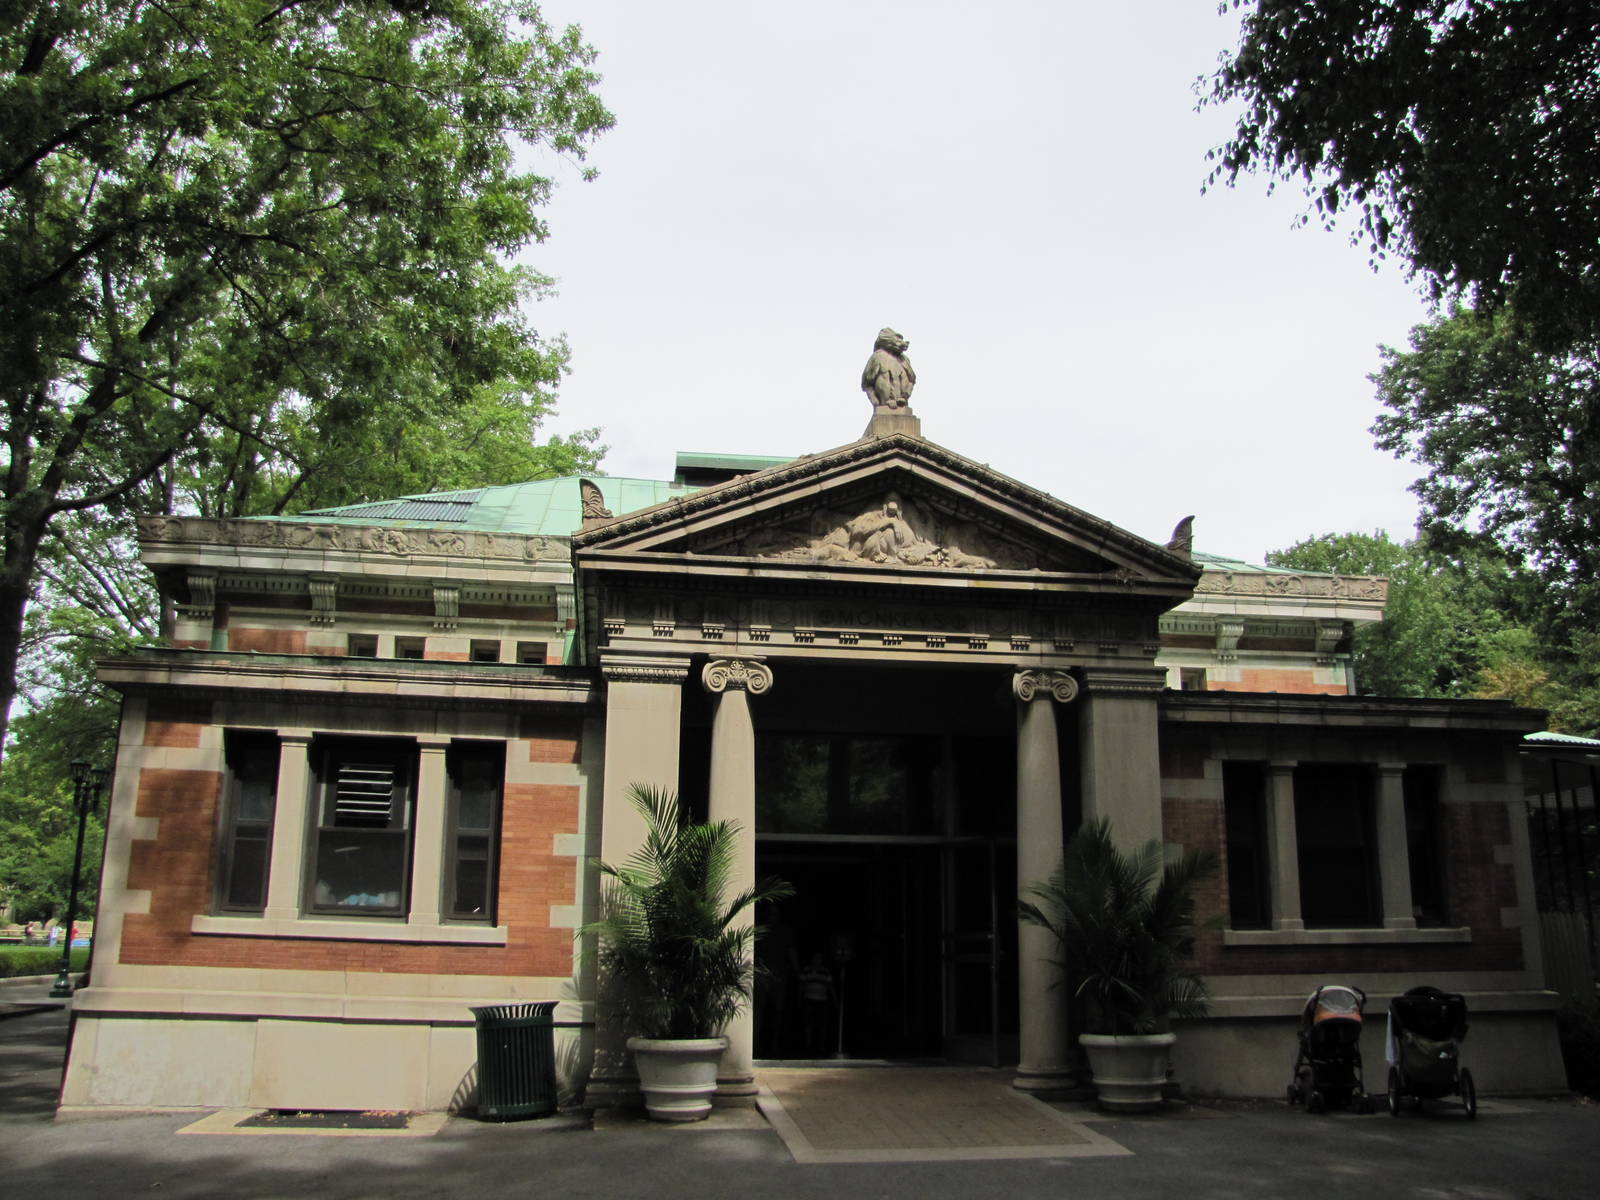 Bronx Zoo's Monkey House